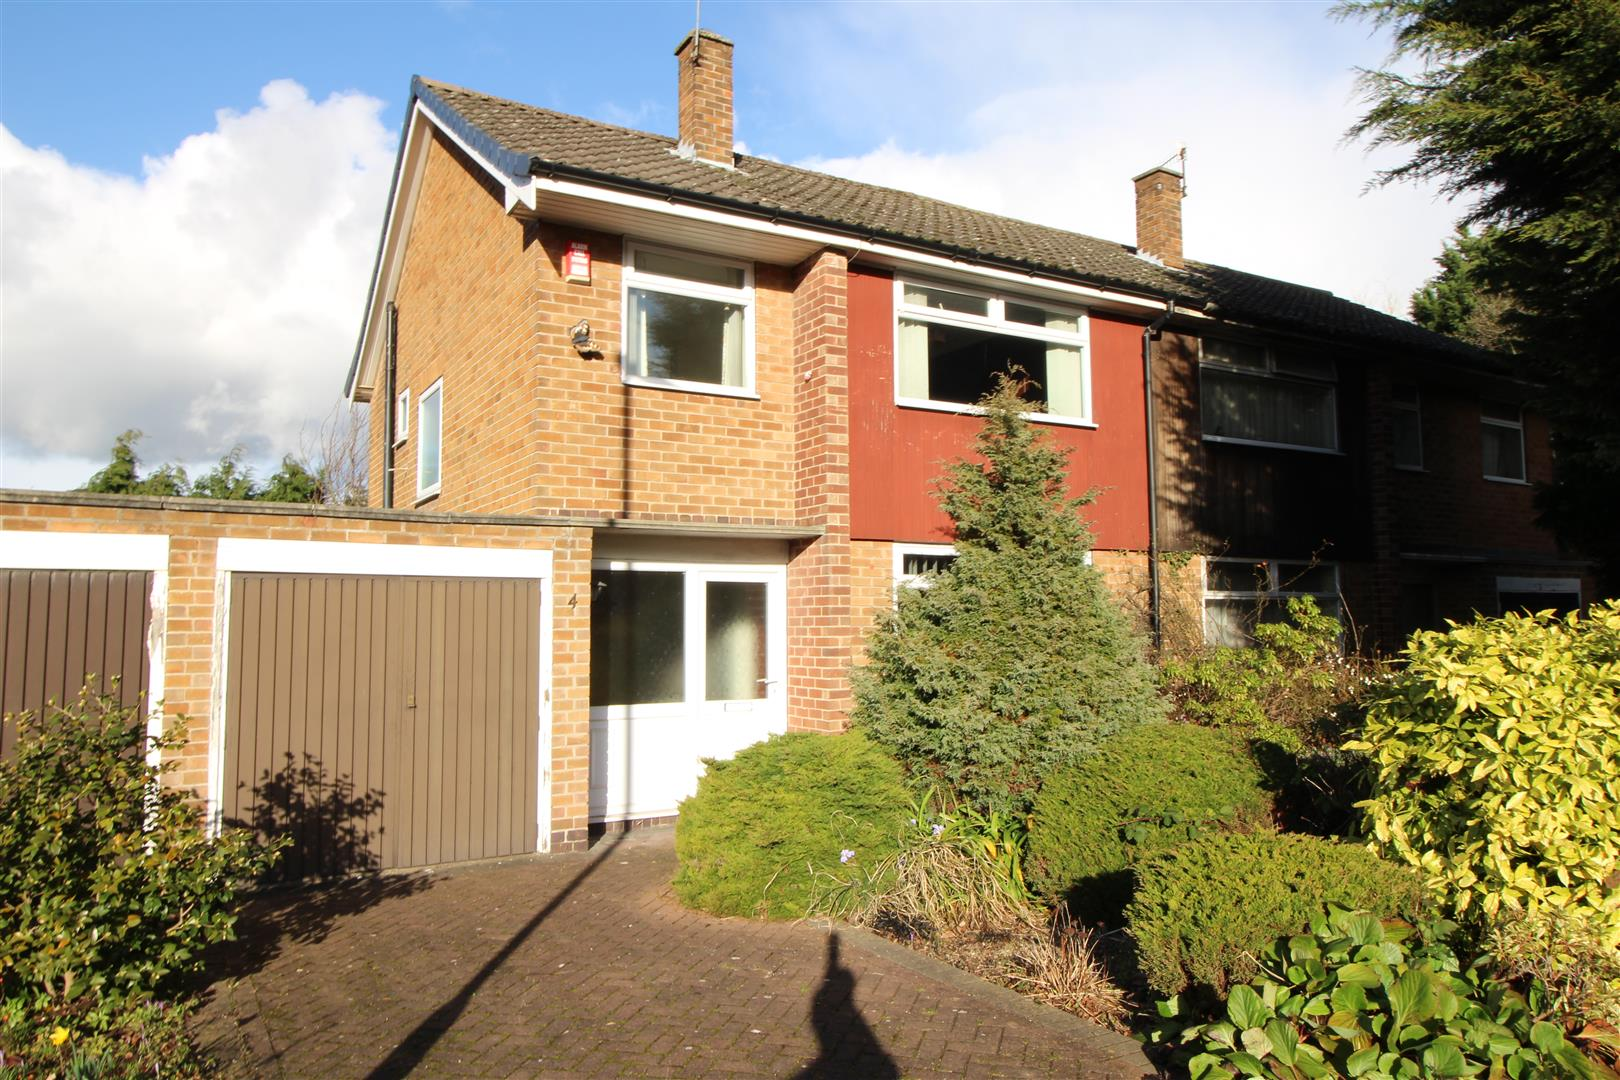 3 Bedrooms Semi Detached House for sale in Blenheim Drive, Chilwell, Nottingham